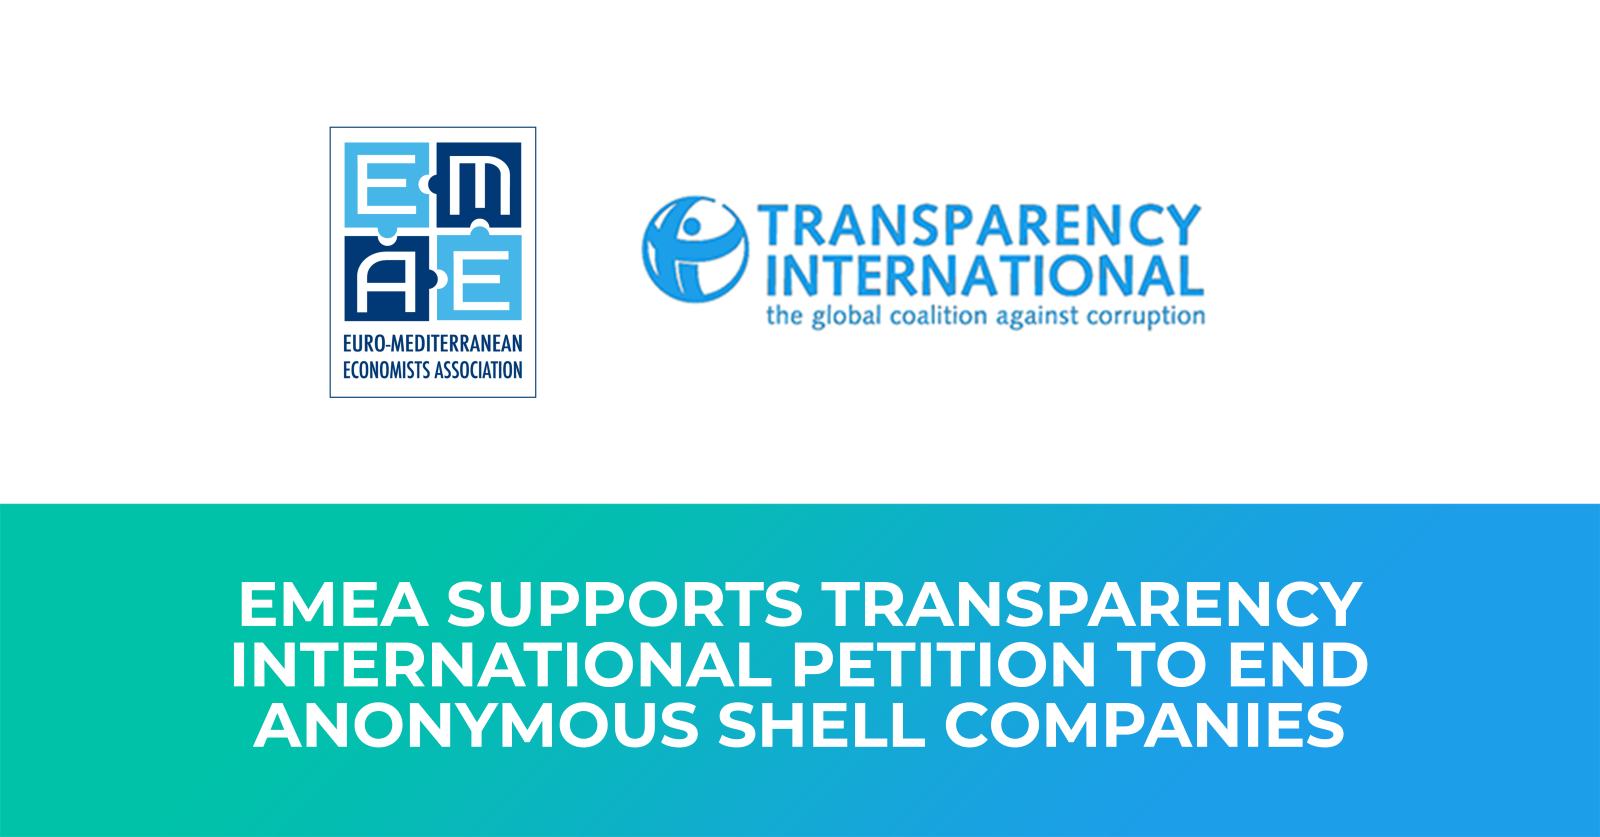 EMEA supports Transparency International petition to end anonymous shell companies